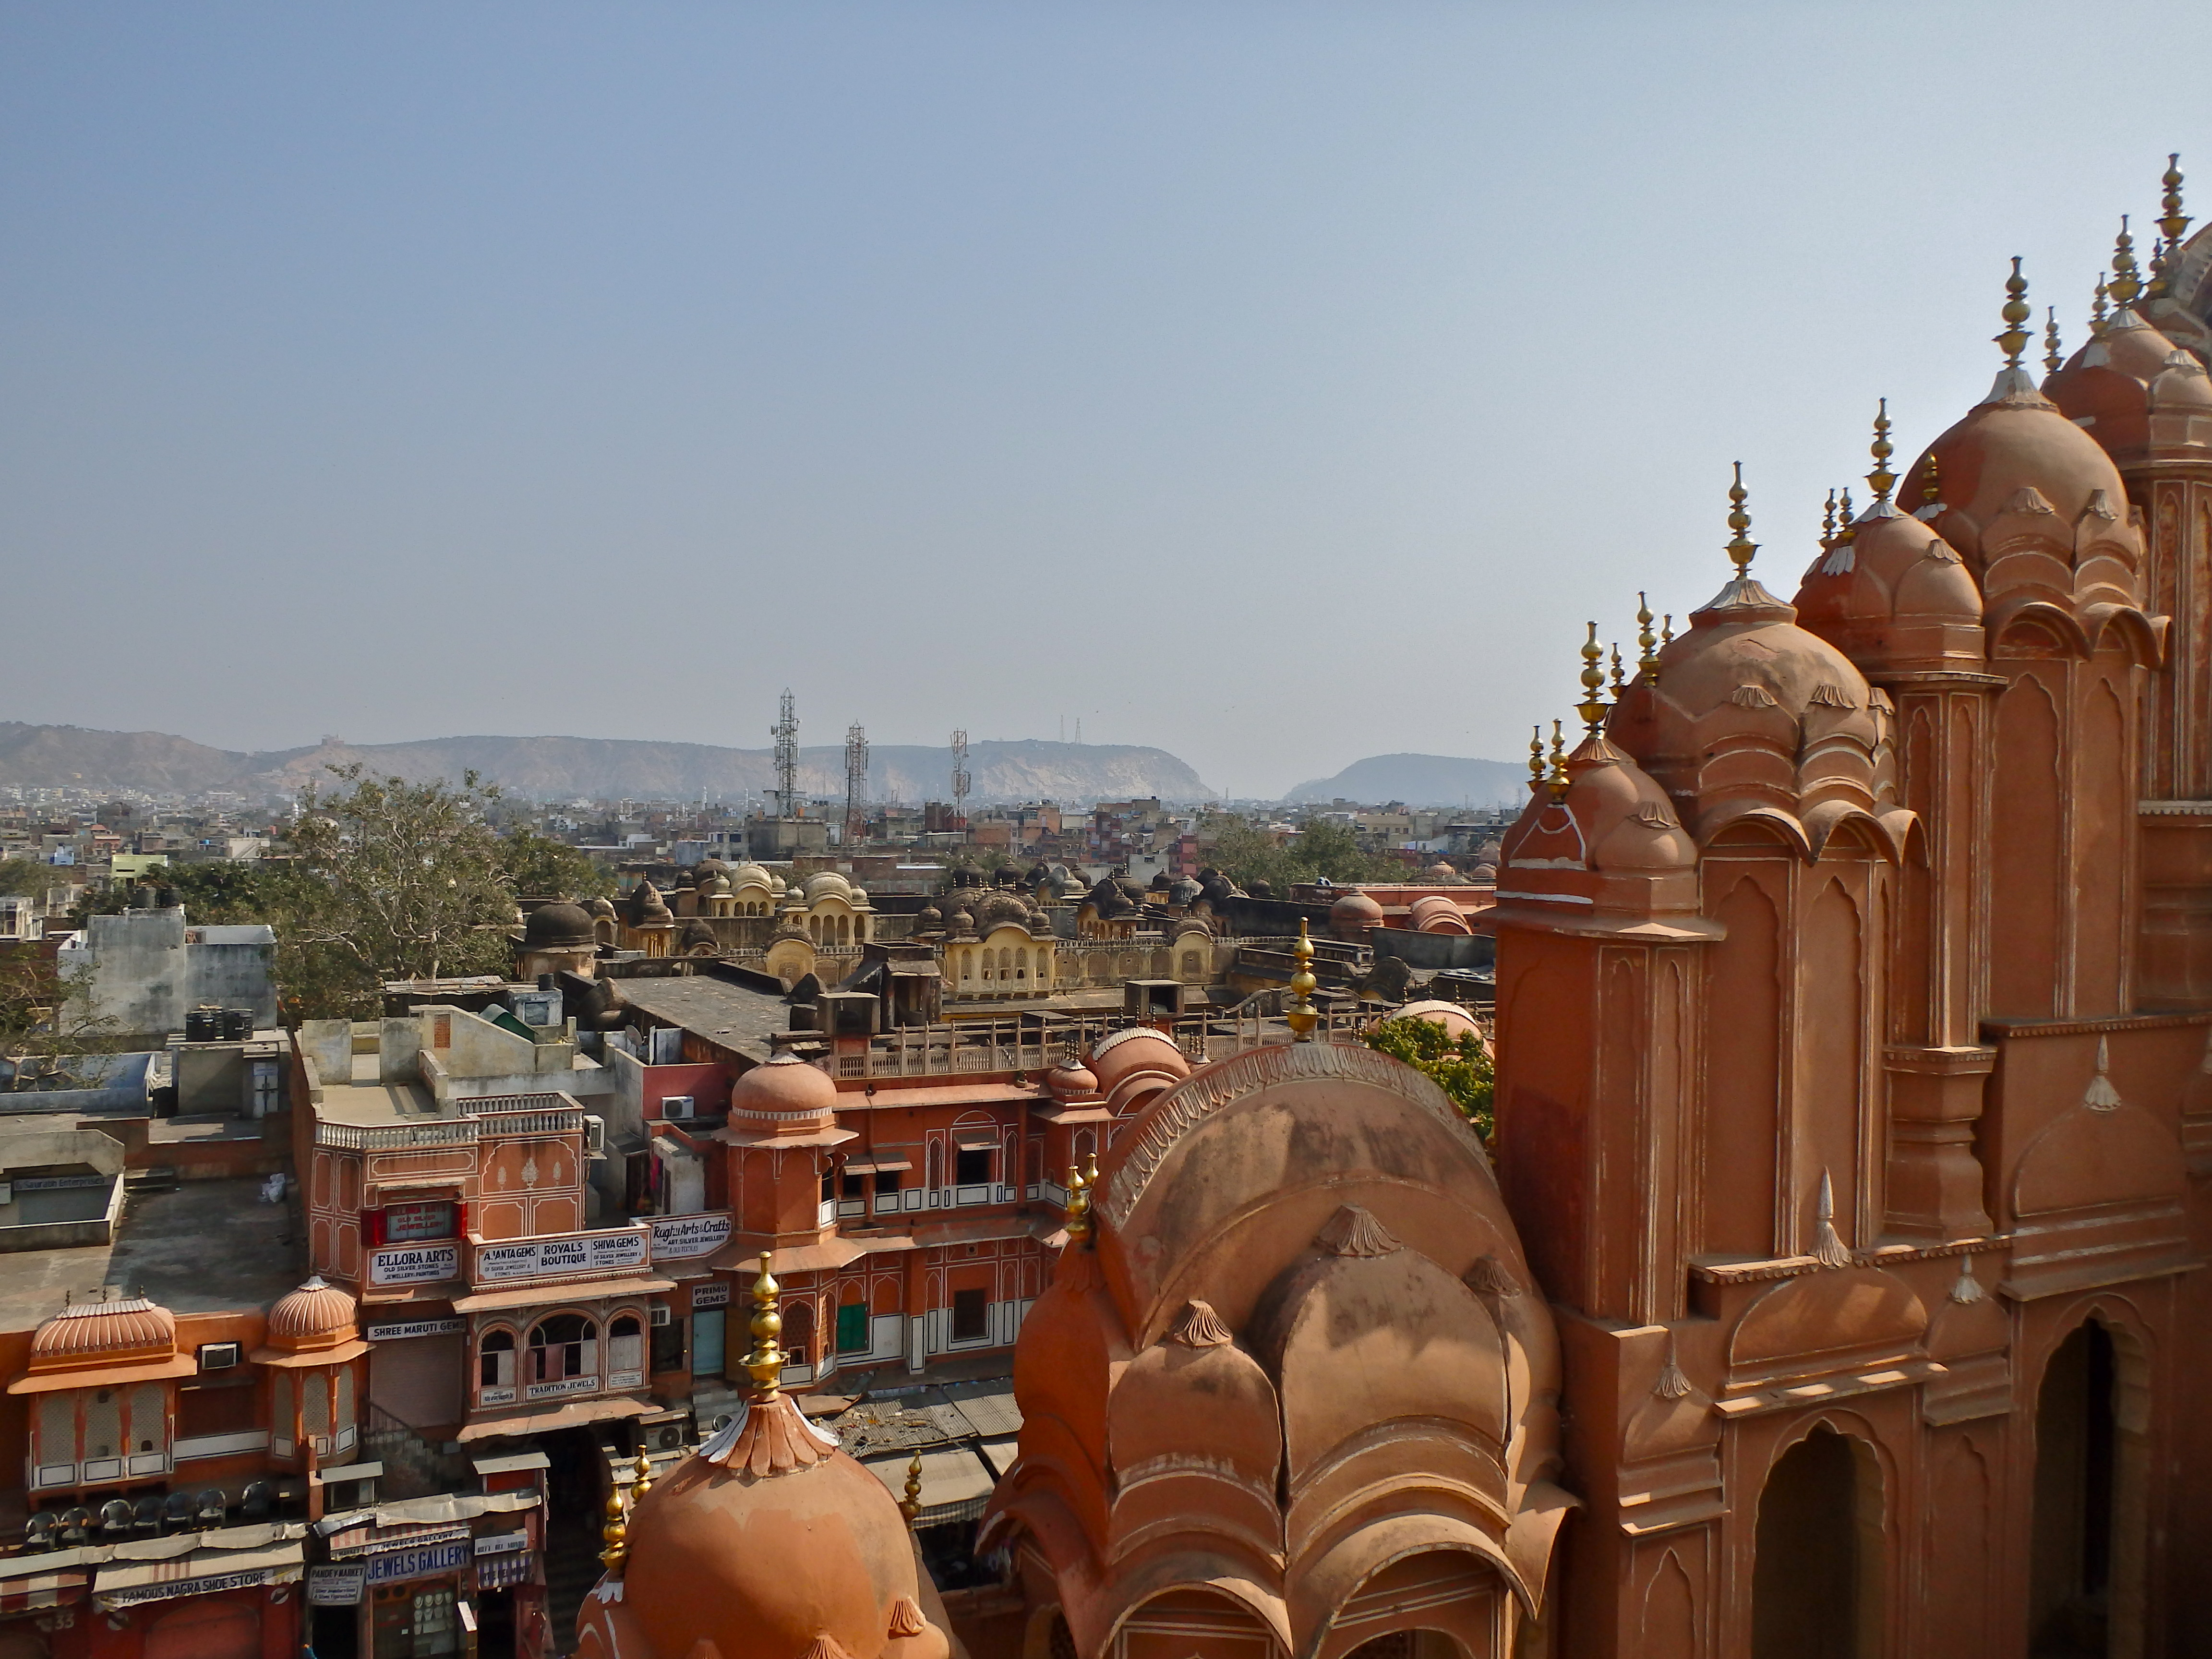 Hawa mahal the beehive jaipur india places to visit in jaipur city day tour of jaipur where is jaipur